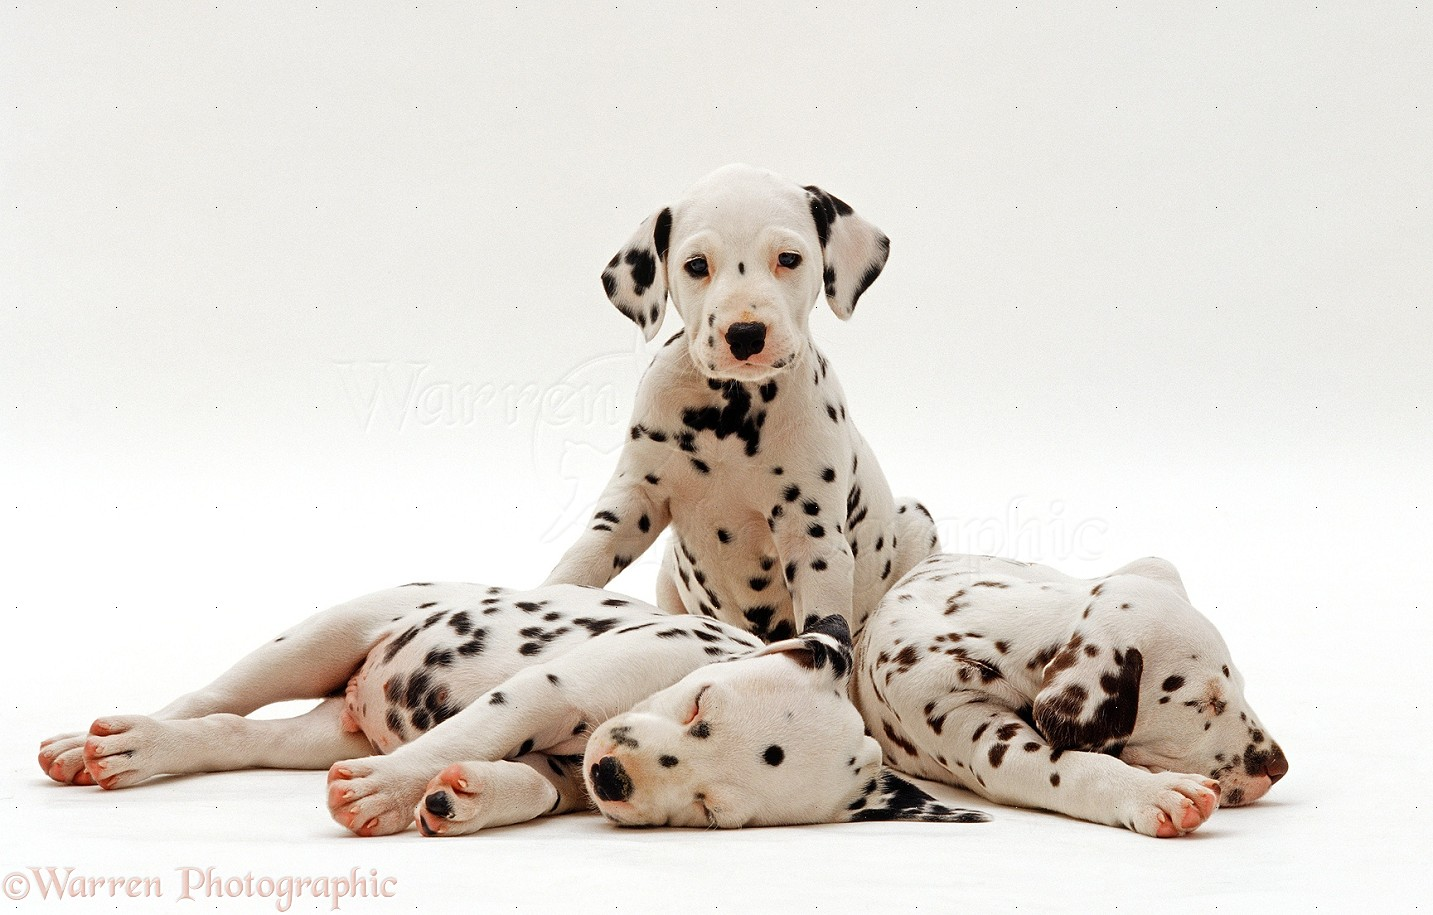 Dogs Three Dalmatian Puppies 6 Weeks Old Sitting And Sleeping